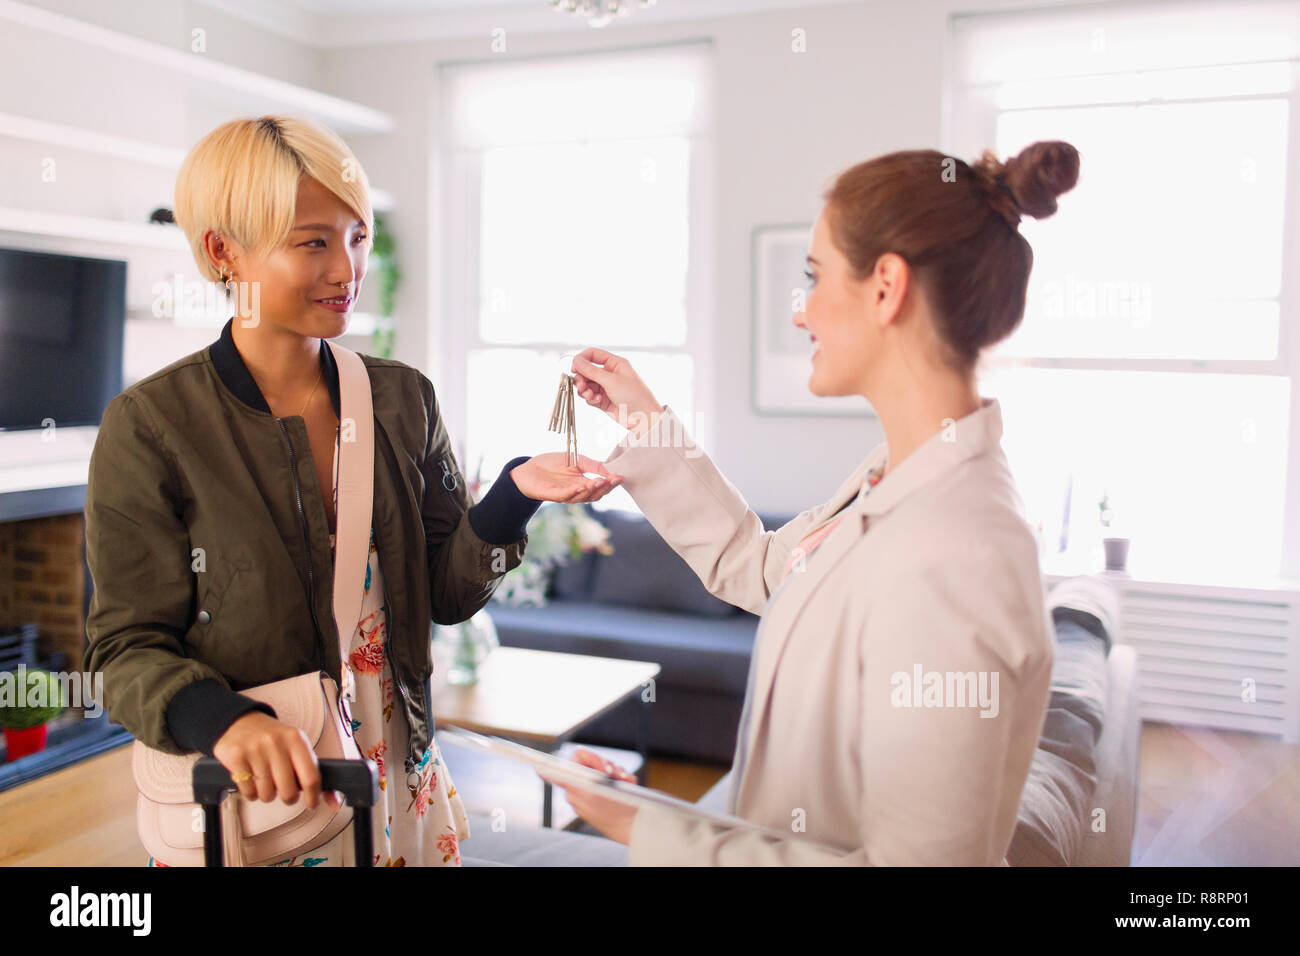 Real estate agent giving house rental keys to young woman - Stock Image